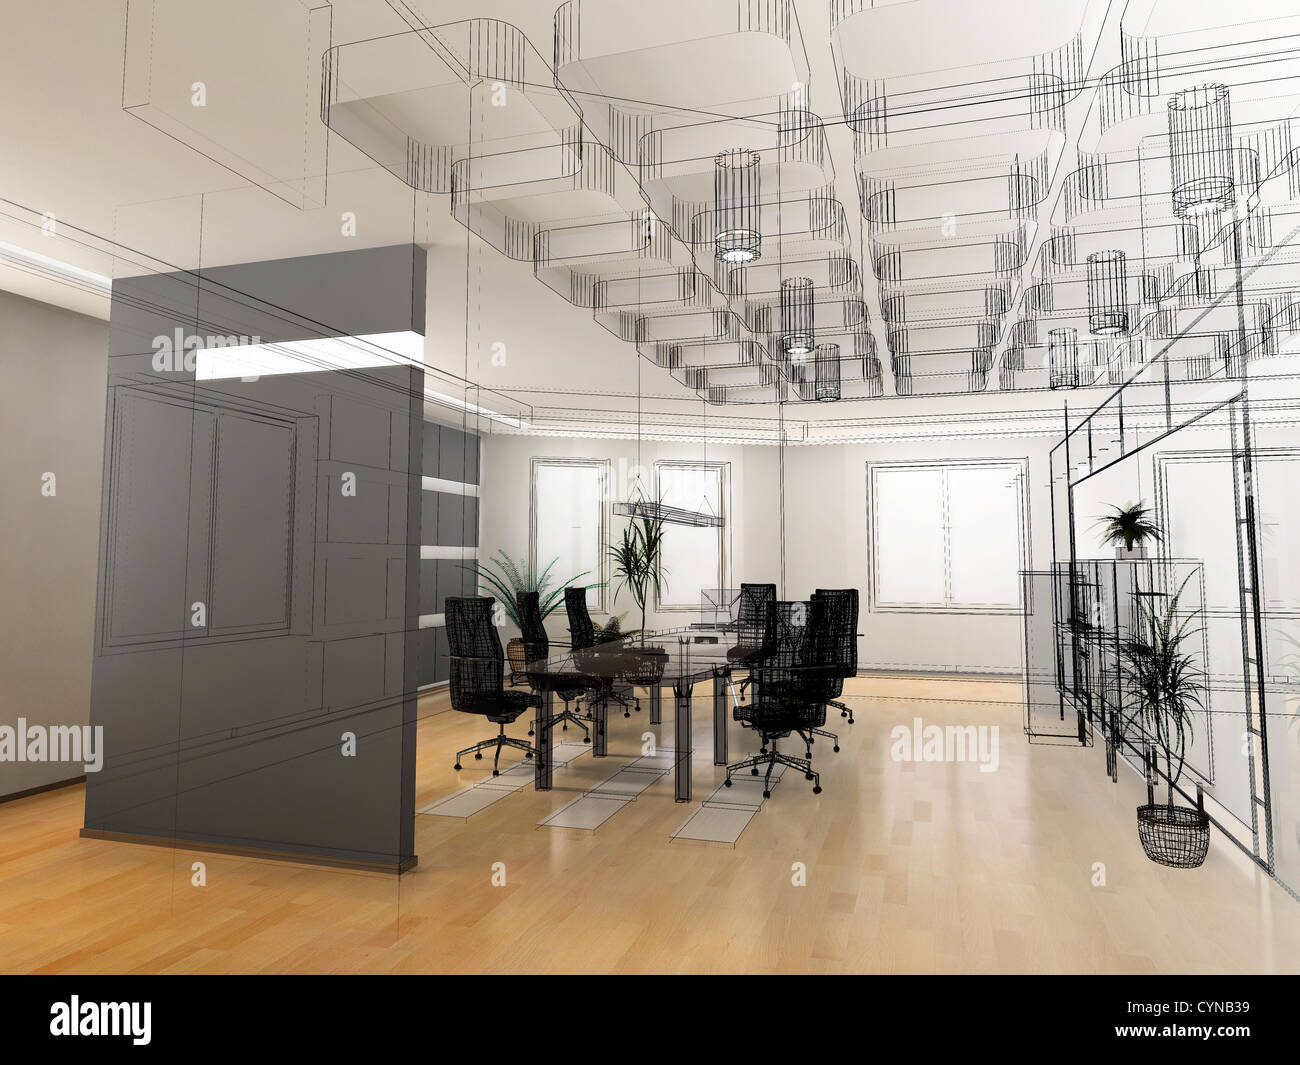 The modern office interior design sketch 3d render